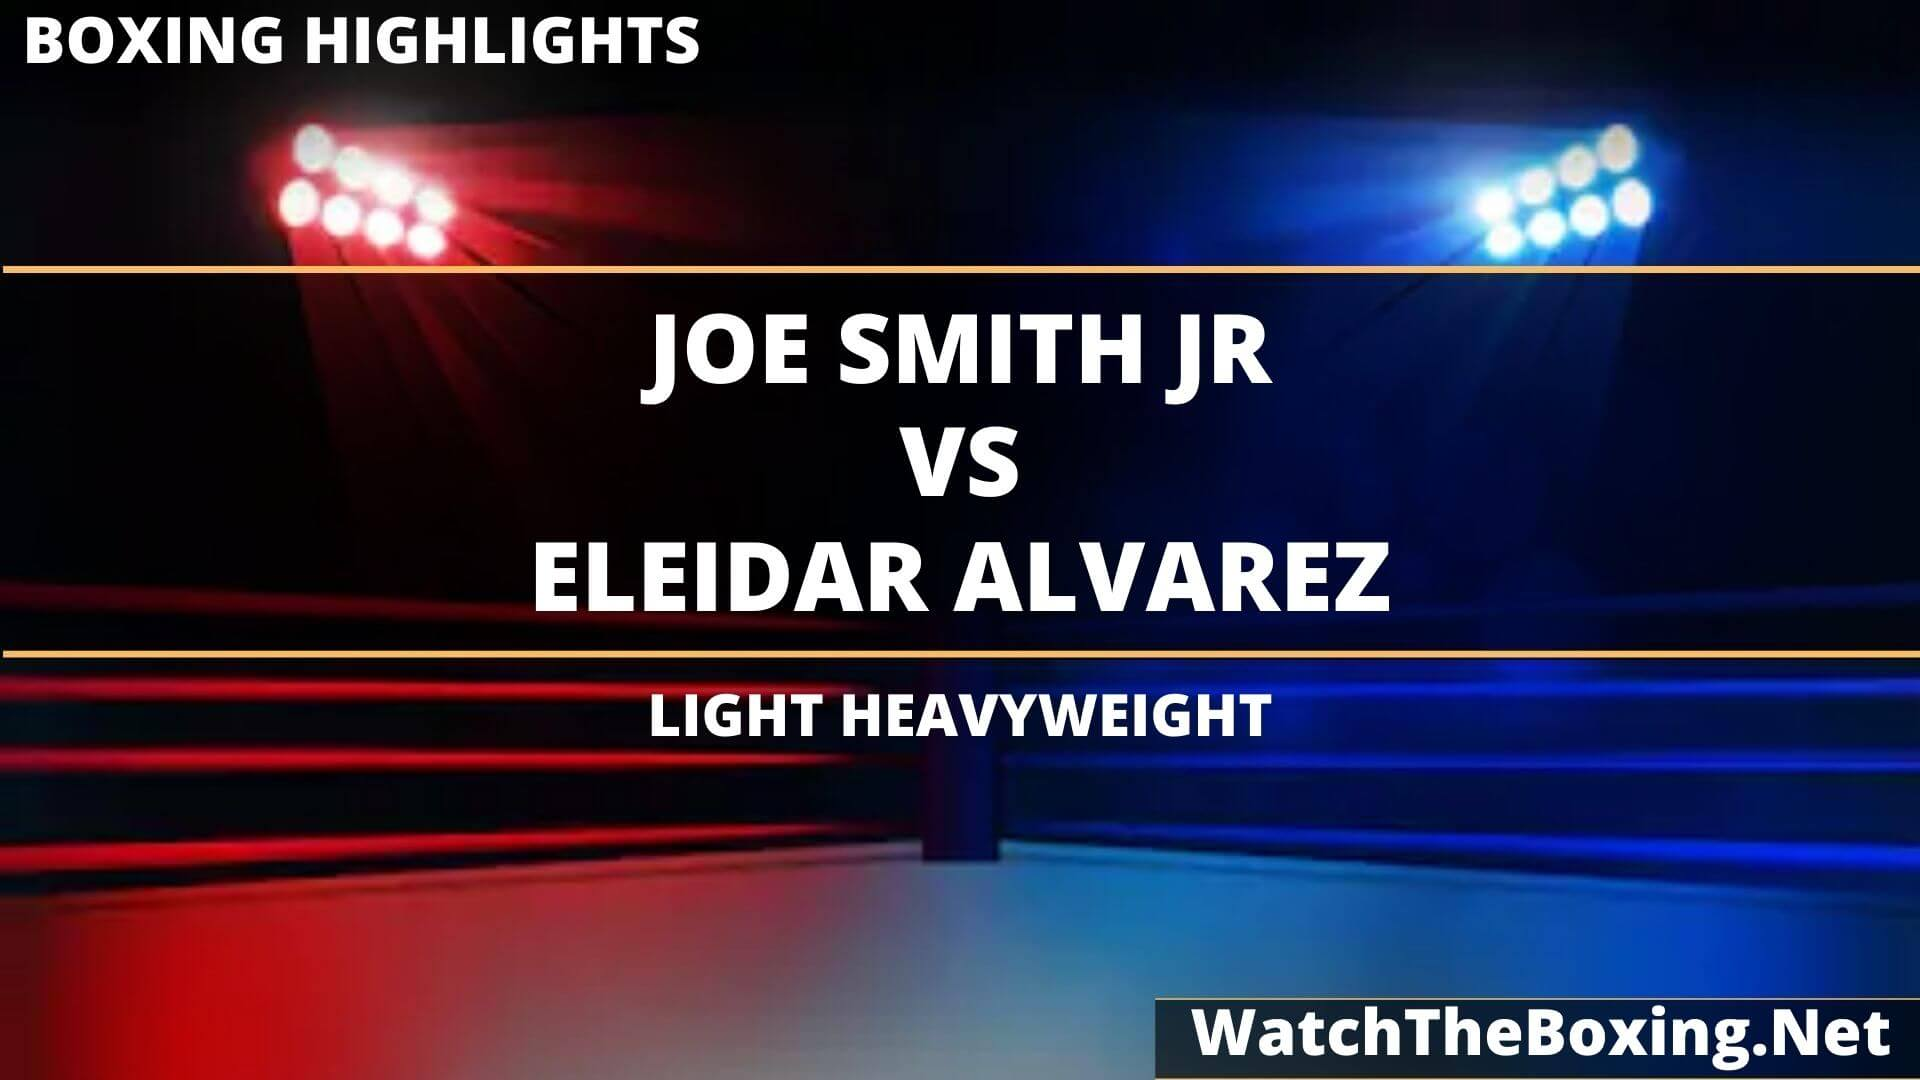 Joe Smith Vs Eleidar Alvarez Highlight 2020 Light Heavyweight